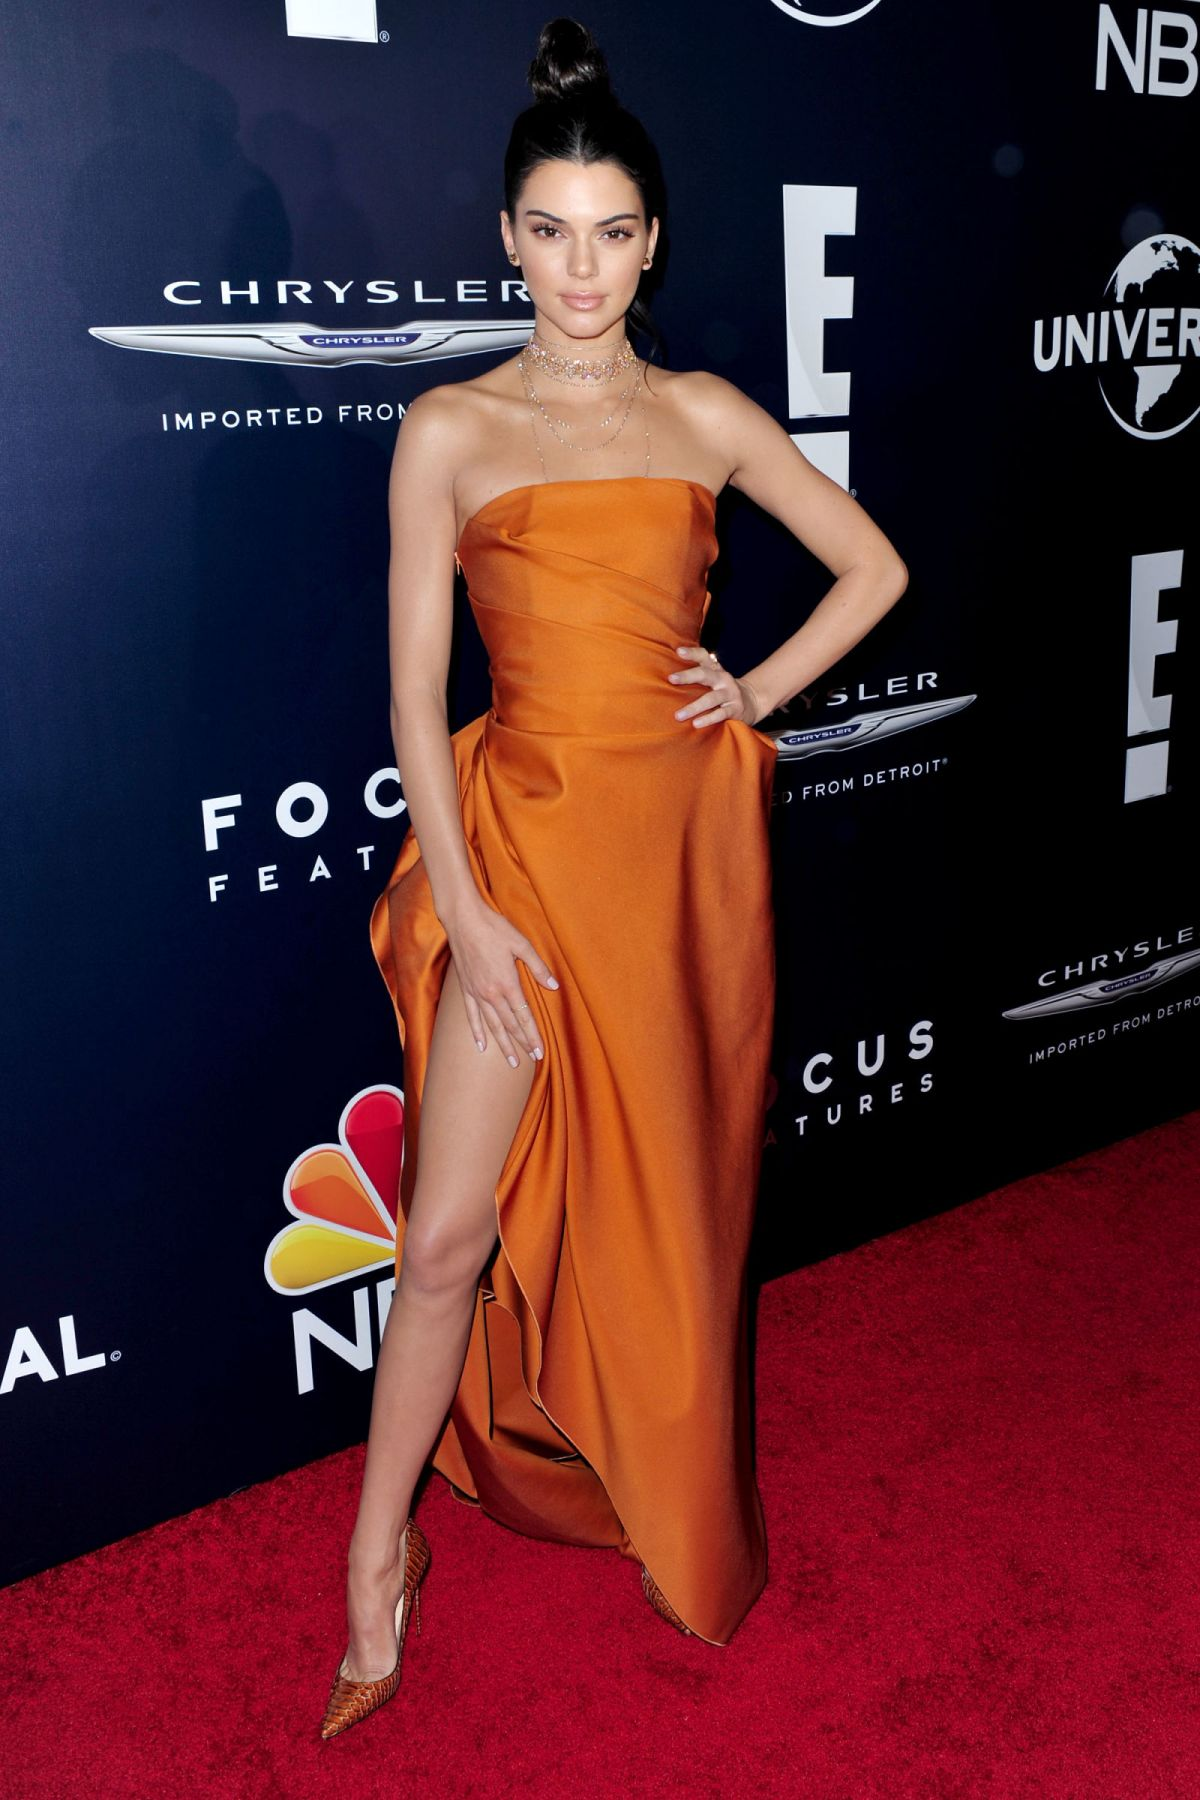 KENDALL JENNER at Warner Bros. Pictures & Instyle's 18th Annual Golden Globes Party in Beverly Hills 01/08/2017